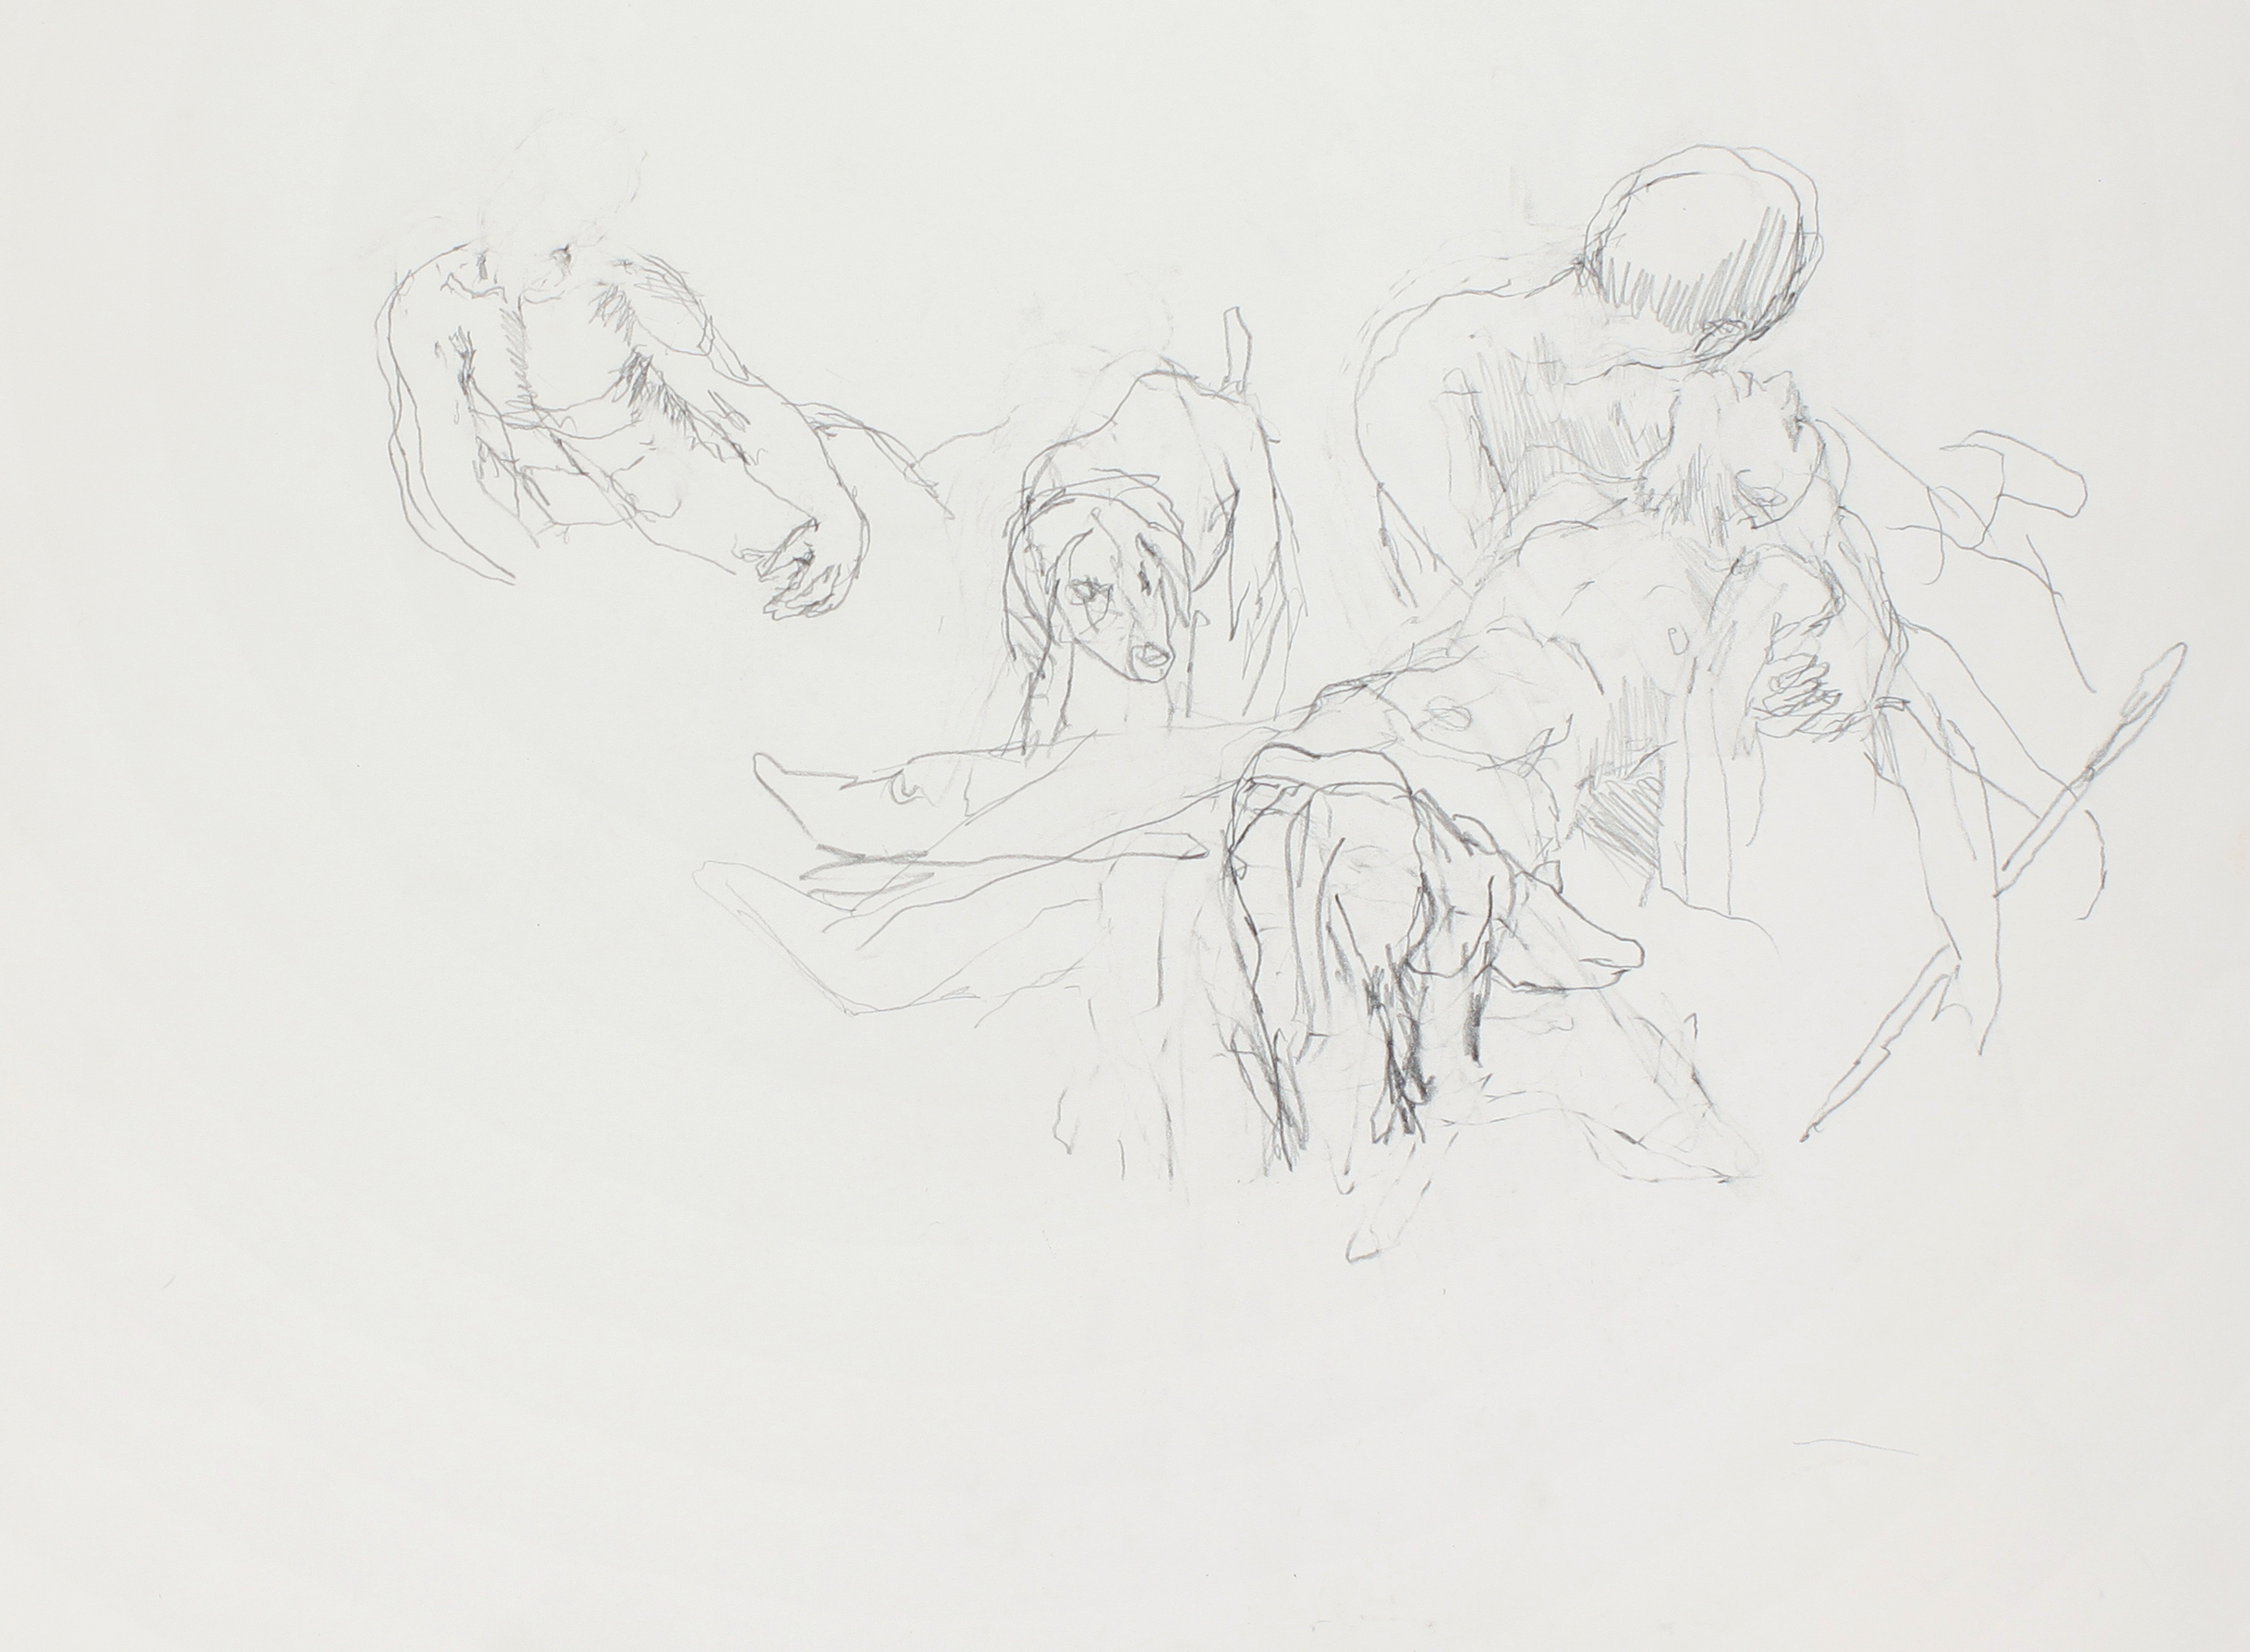 1987_Study_for_Finding_of_Procris_pencil_on_paper_11x15in_WPF632.jpg